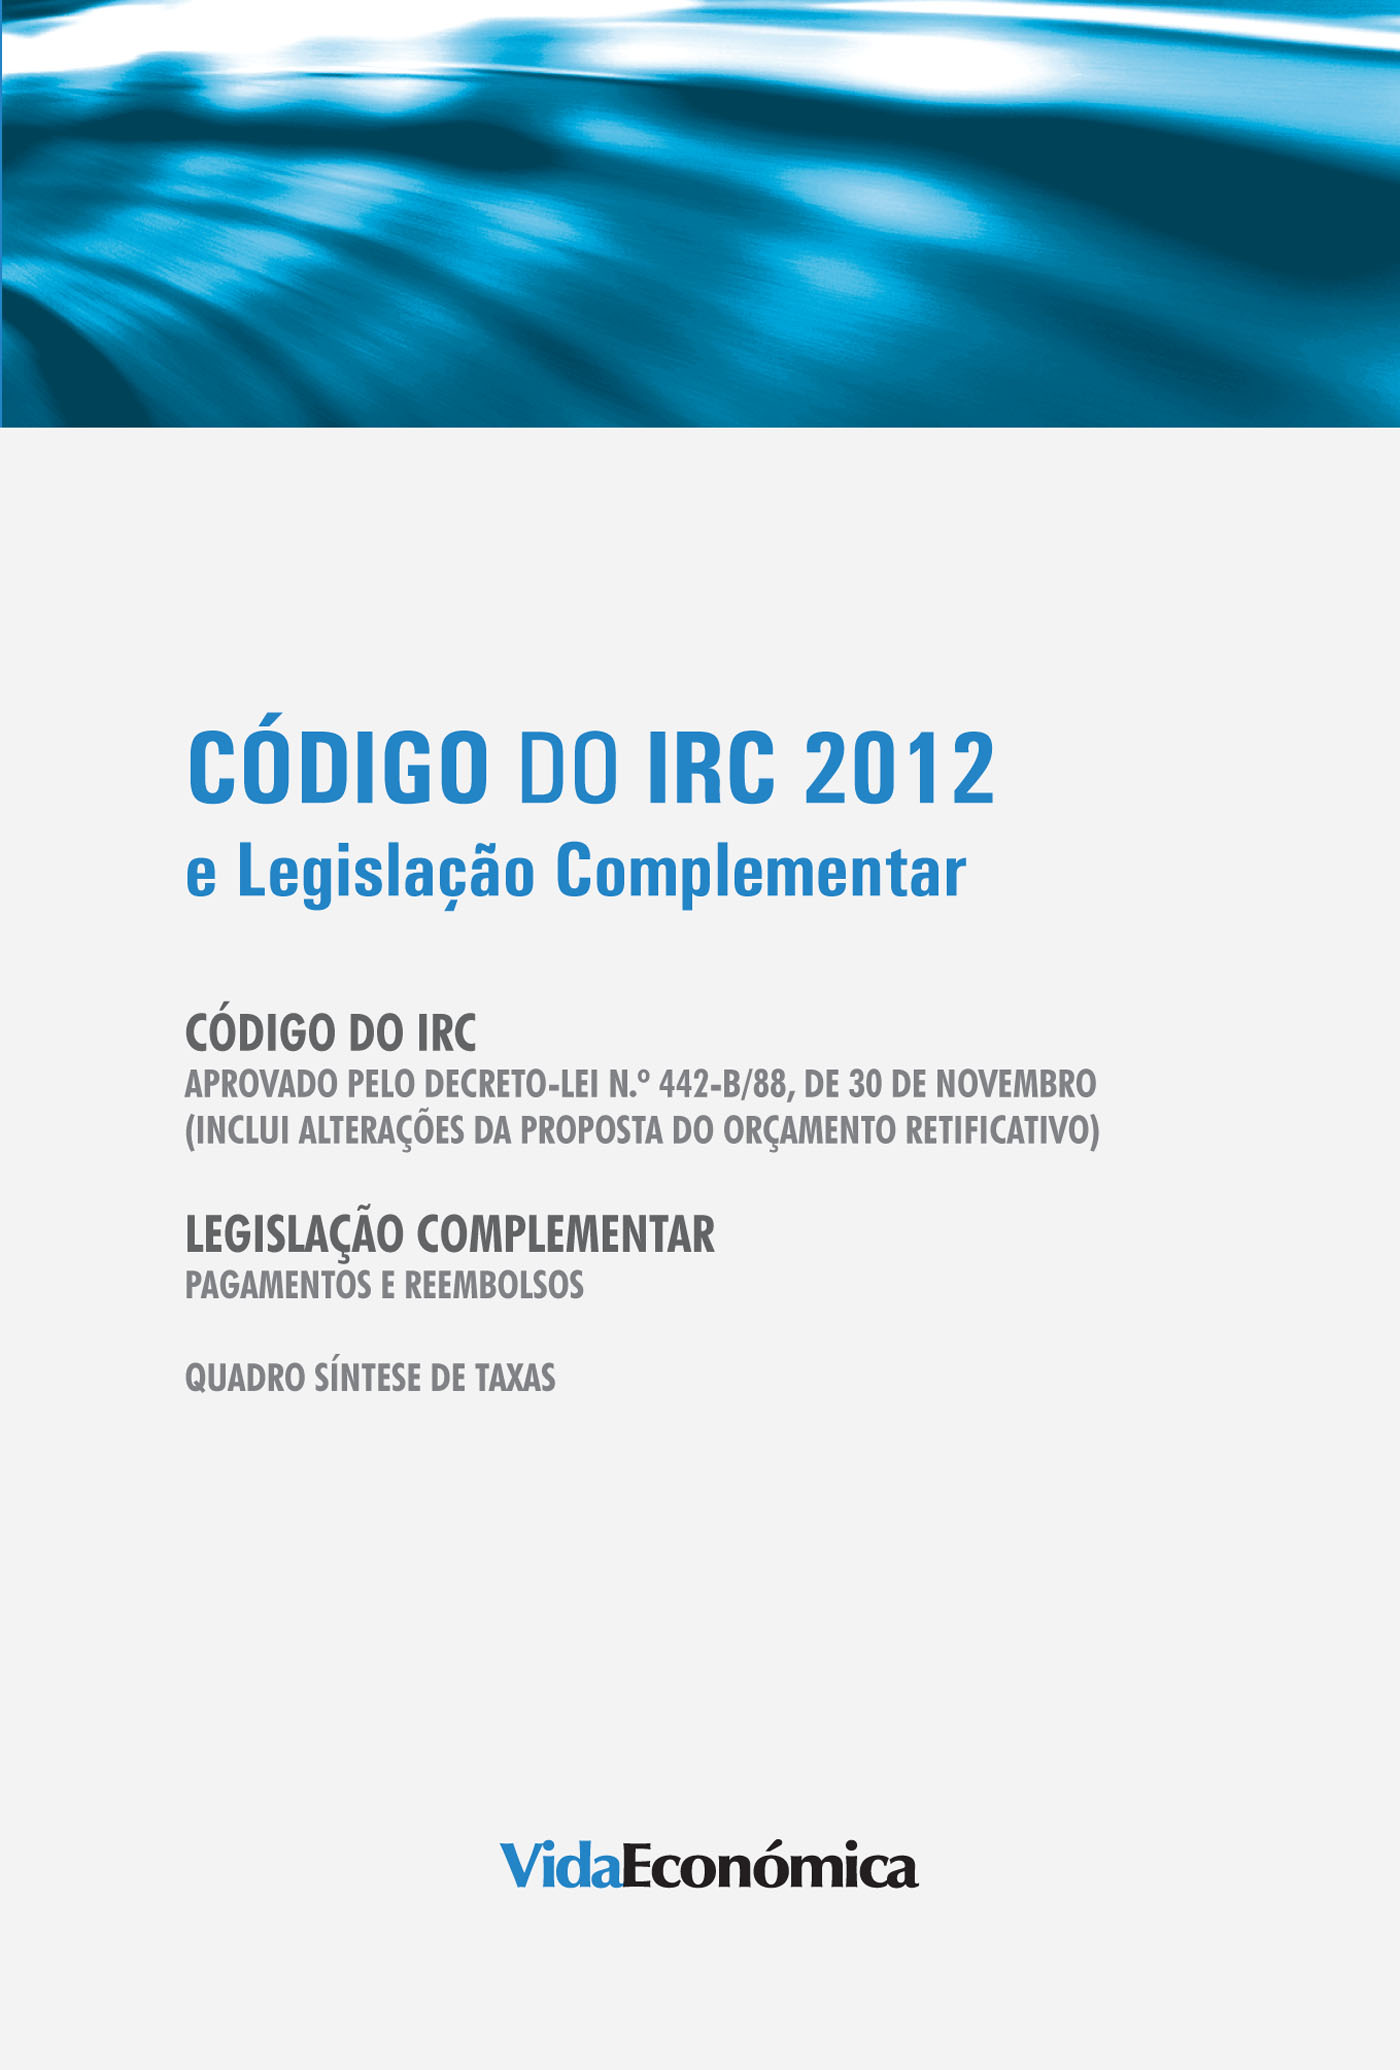 Código do IRC 2012